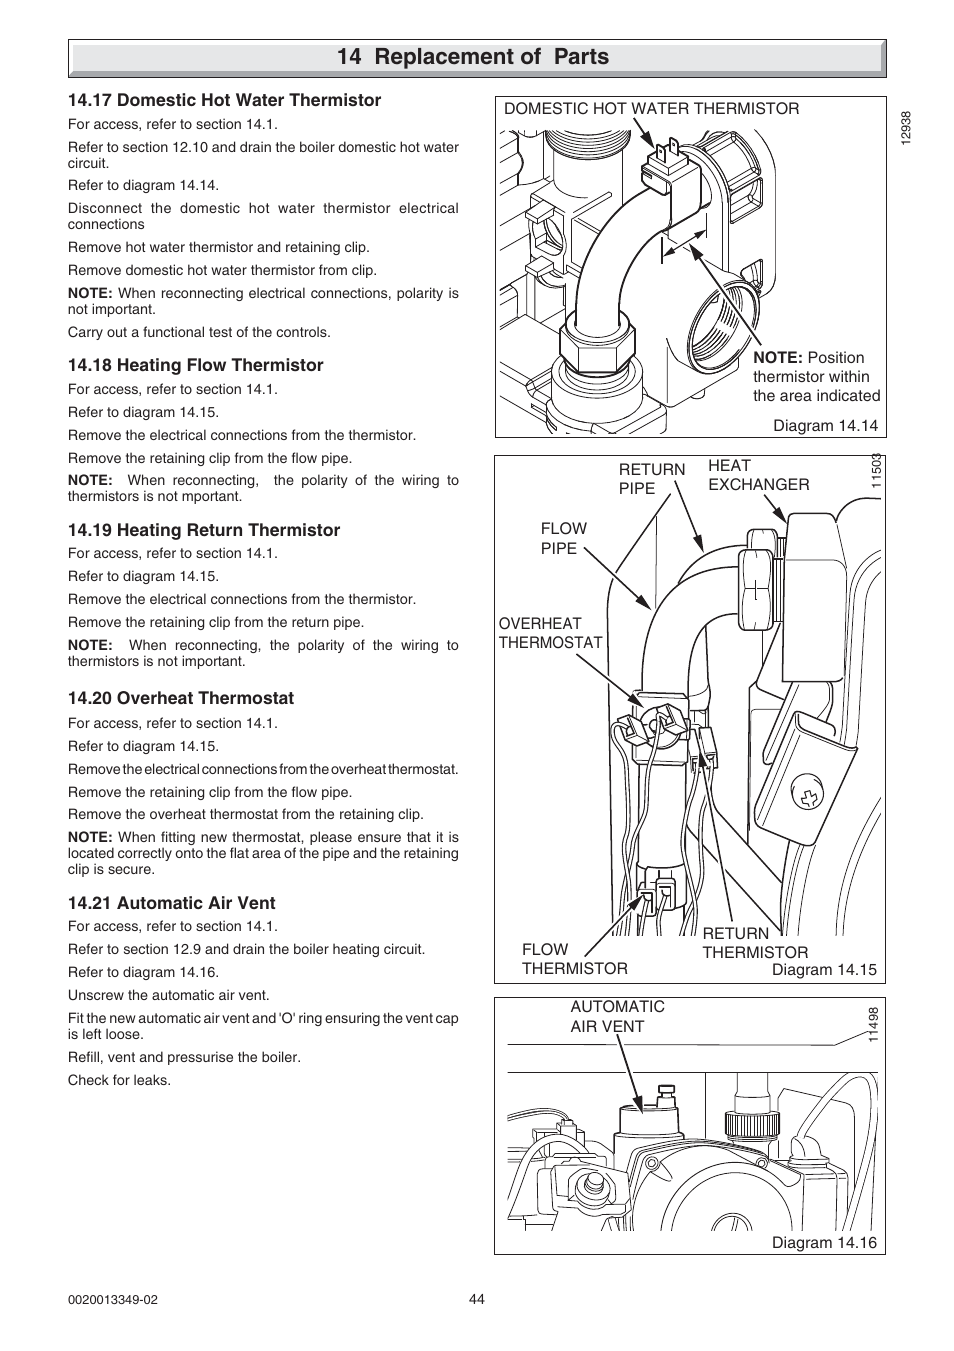 14 Replacement Of Parts Glow Worm Cxi And Gas Valve User Manual Water Wiring Diagram Page 44 56